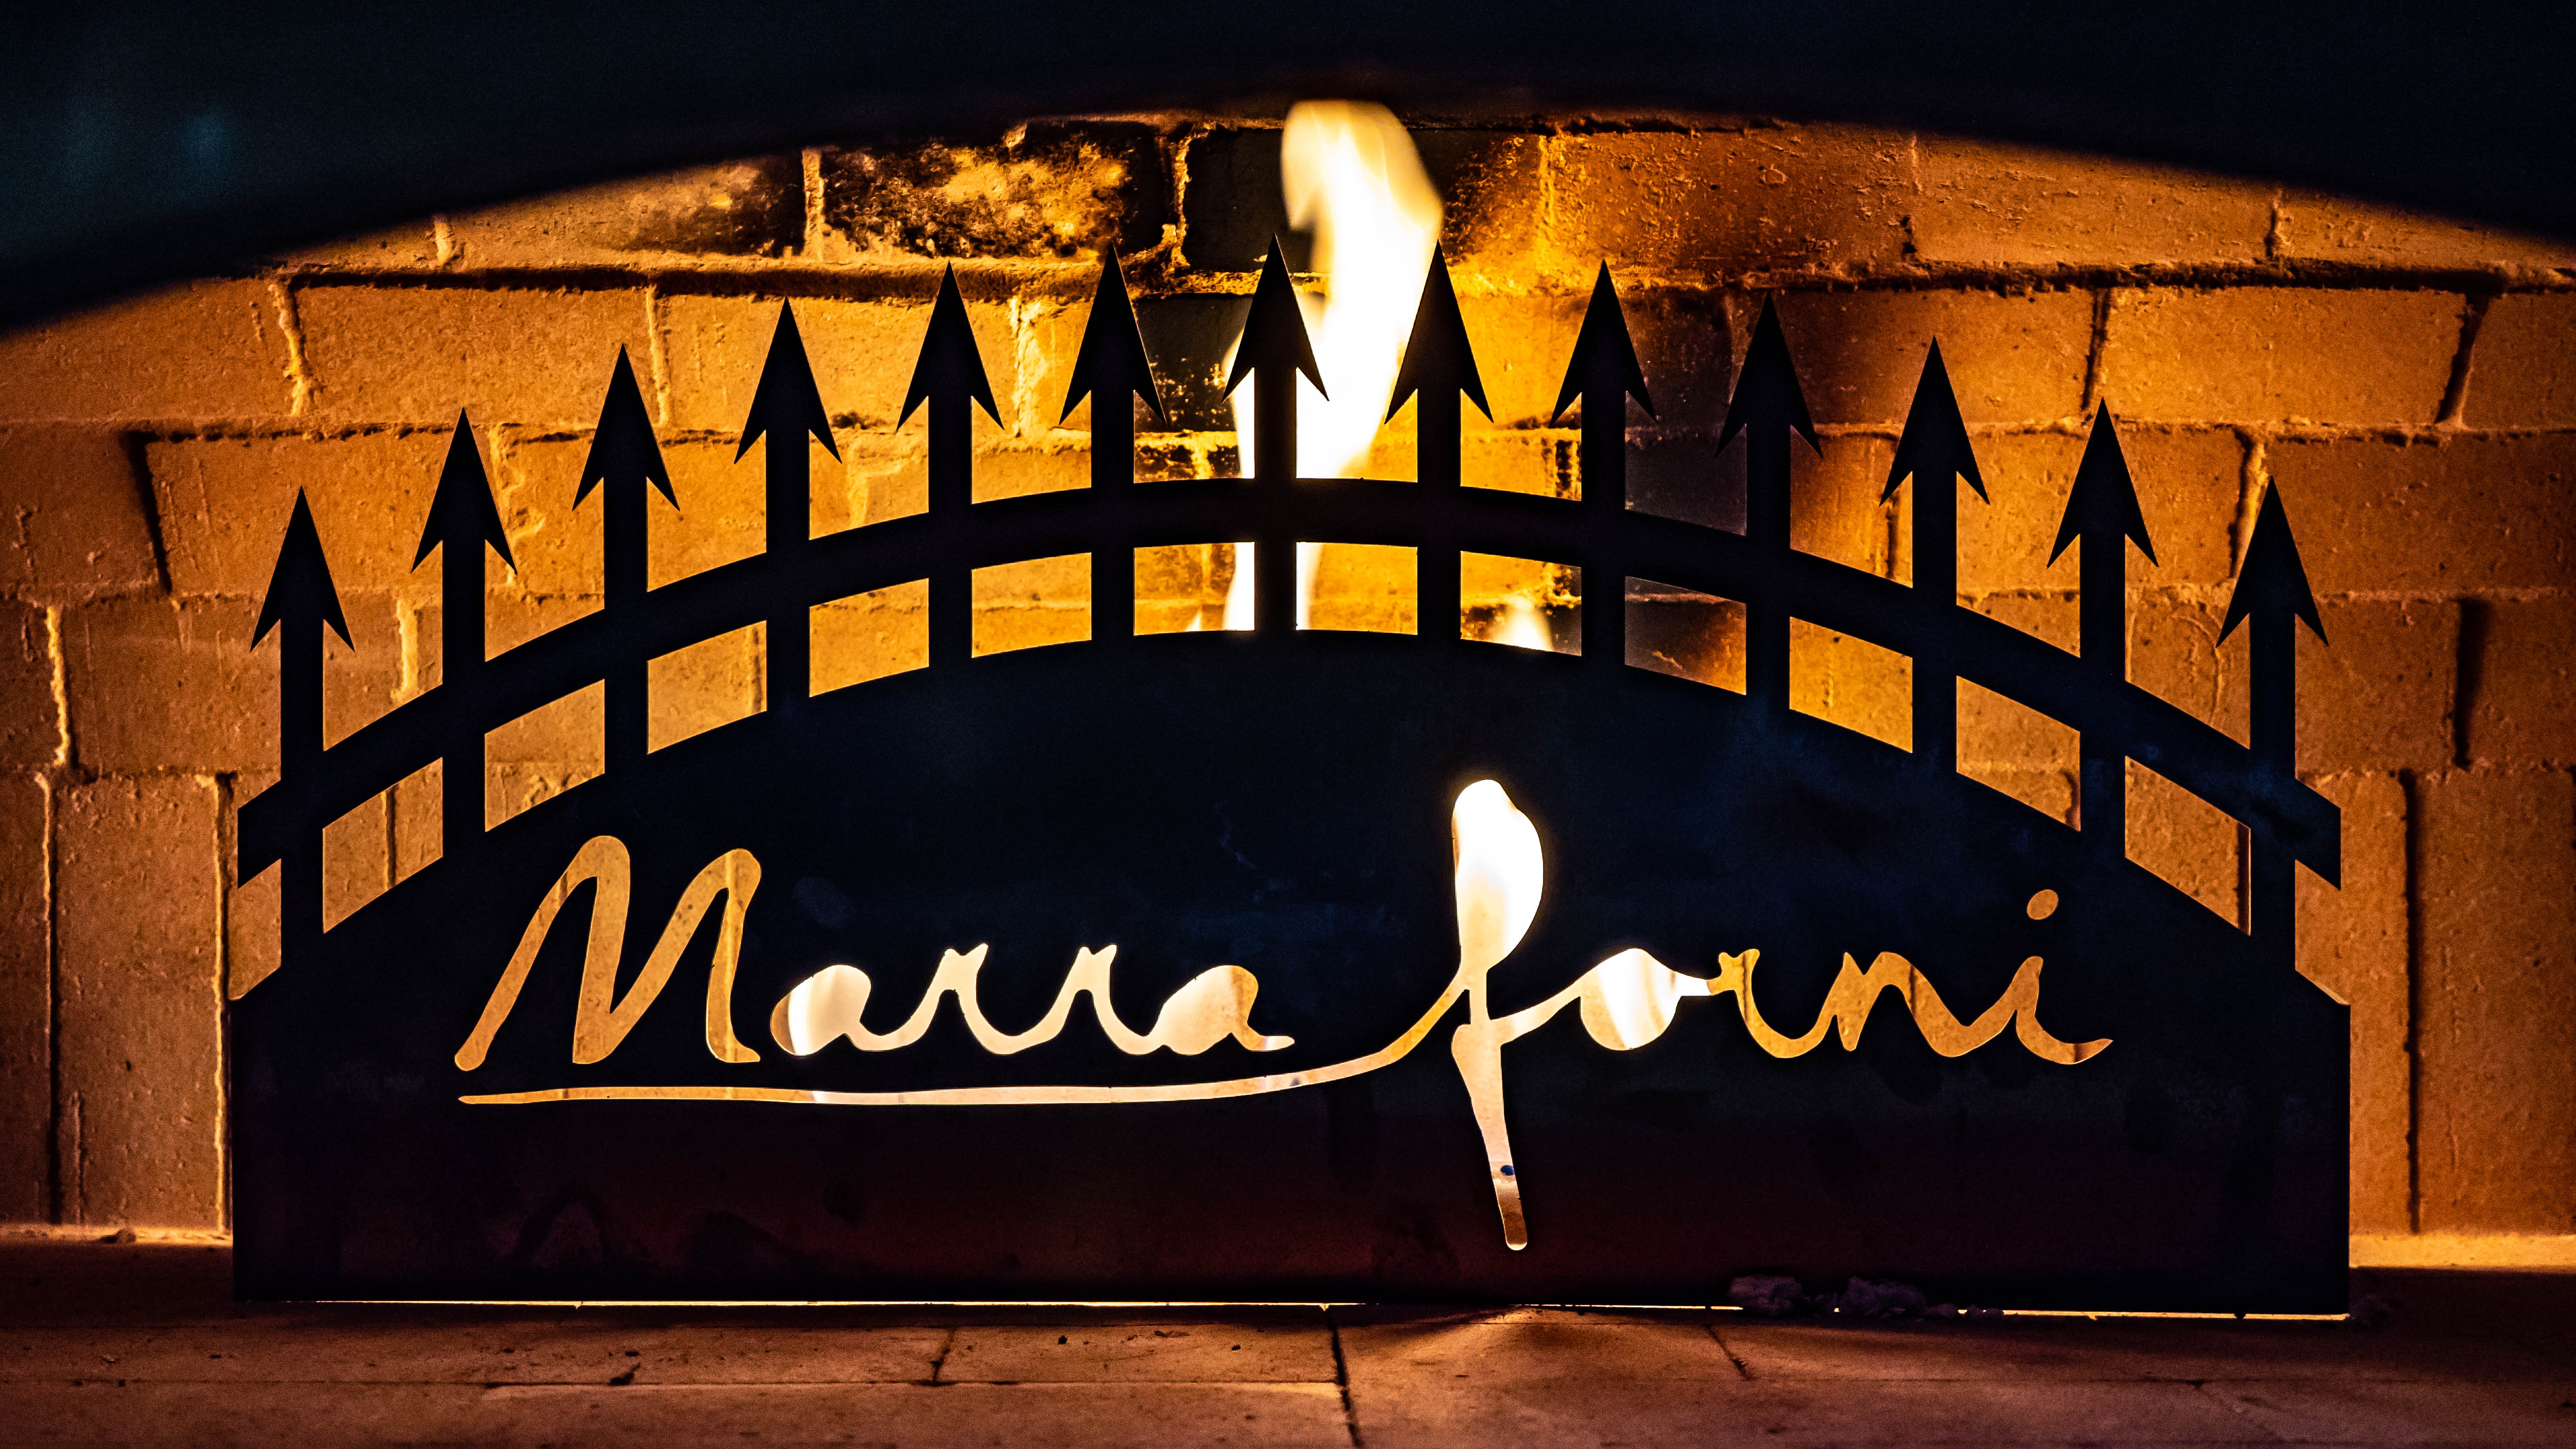 Marra Forni Fire Place in brick oven